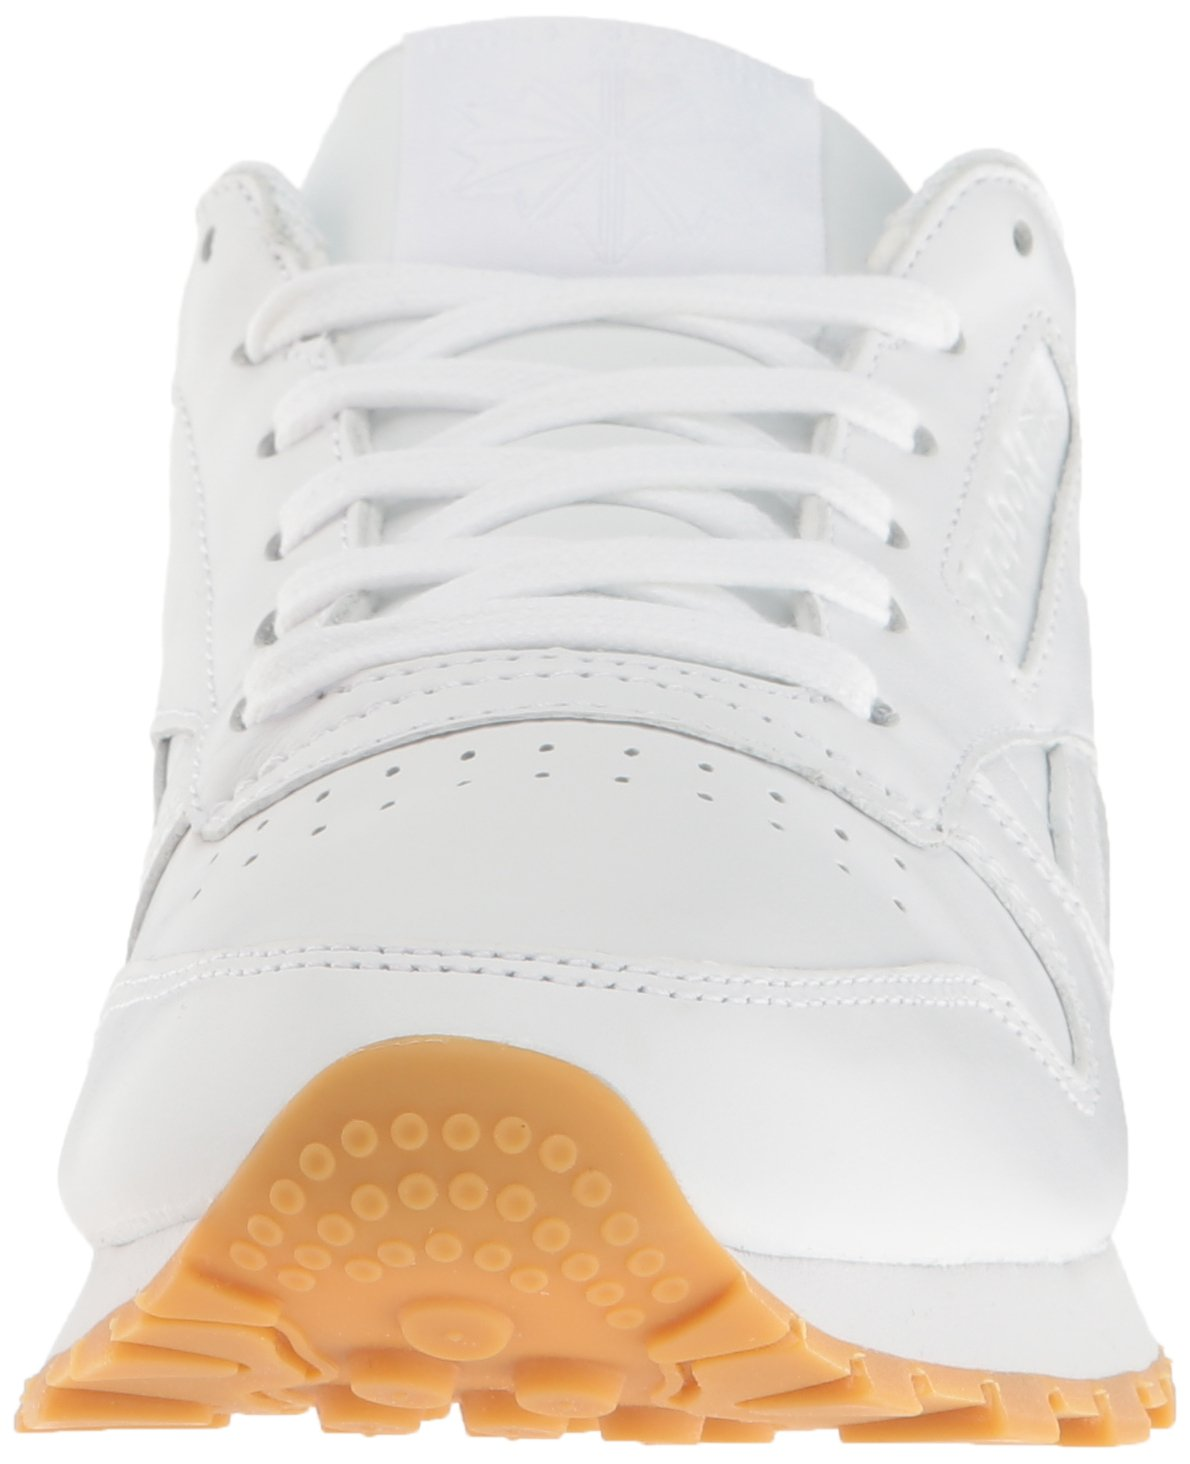 Reebok Women's Cl Lthr Met Diamond B(M) Fashion Sneaker B01GRWFT7I 7 B(M) Diamond US|White/Gum 8afefb